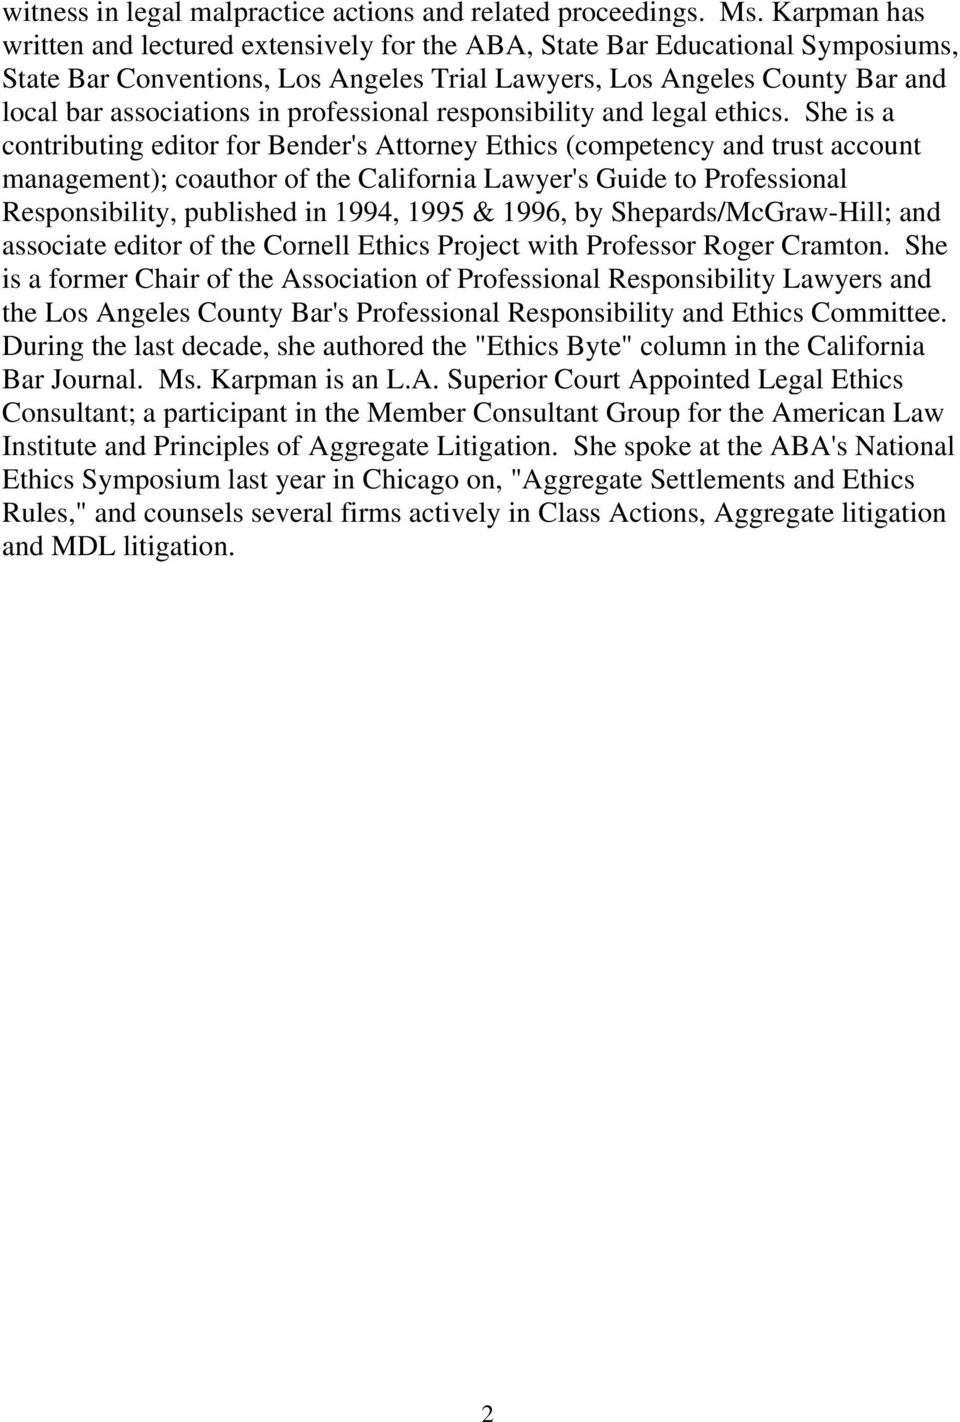 professional responsibility and legal ethics.